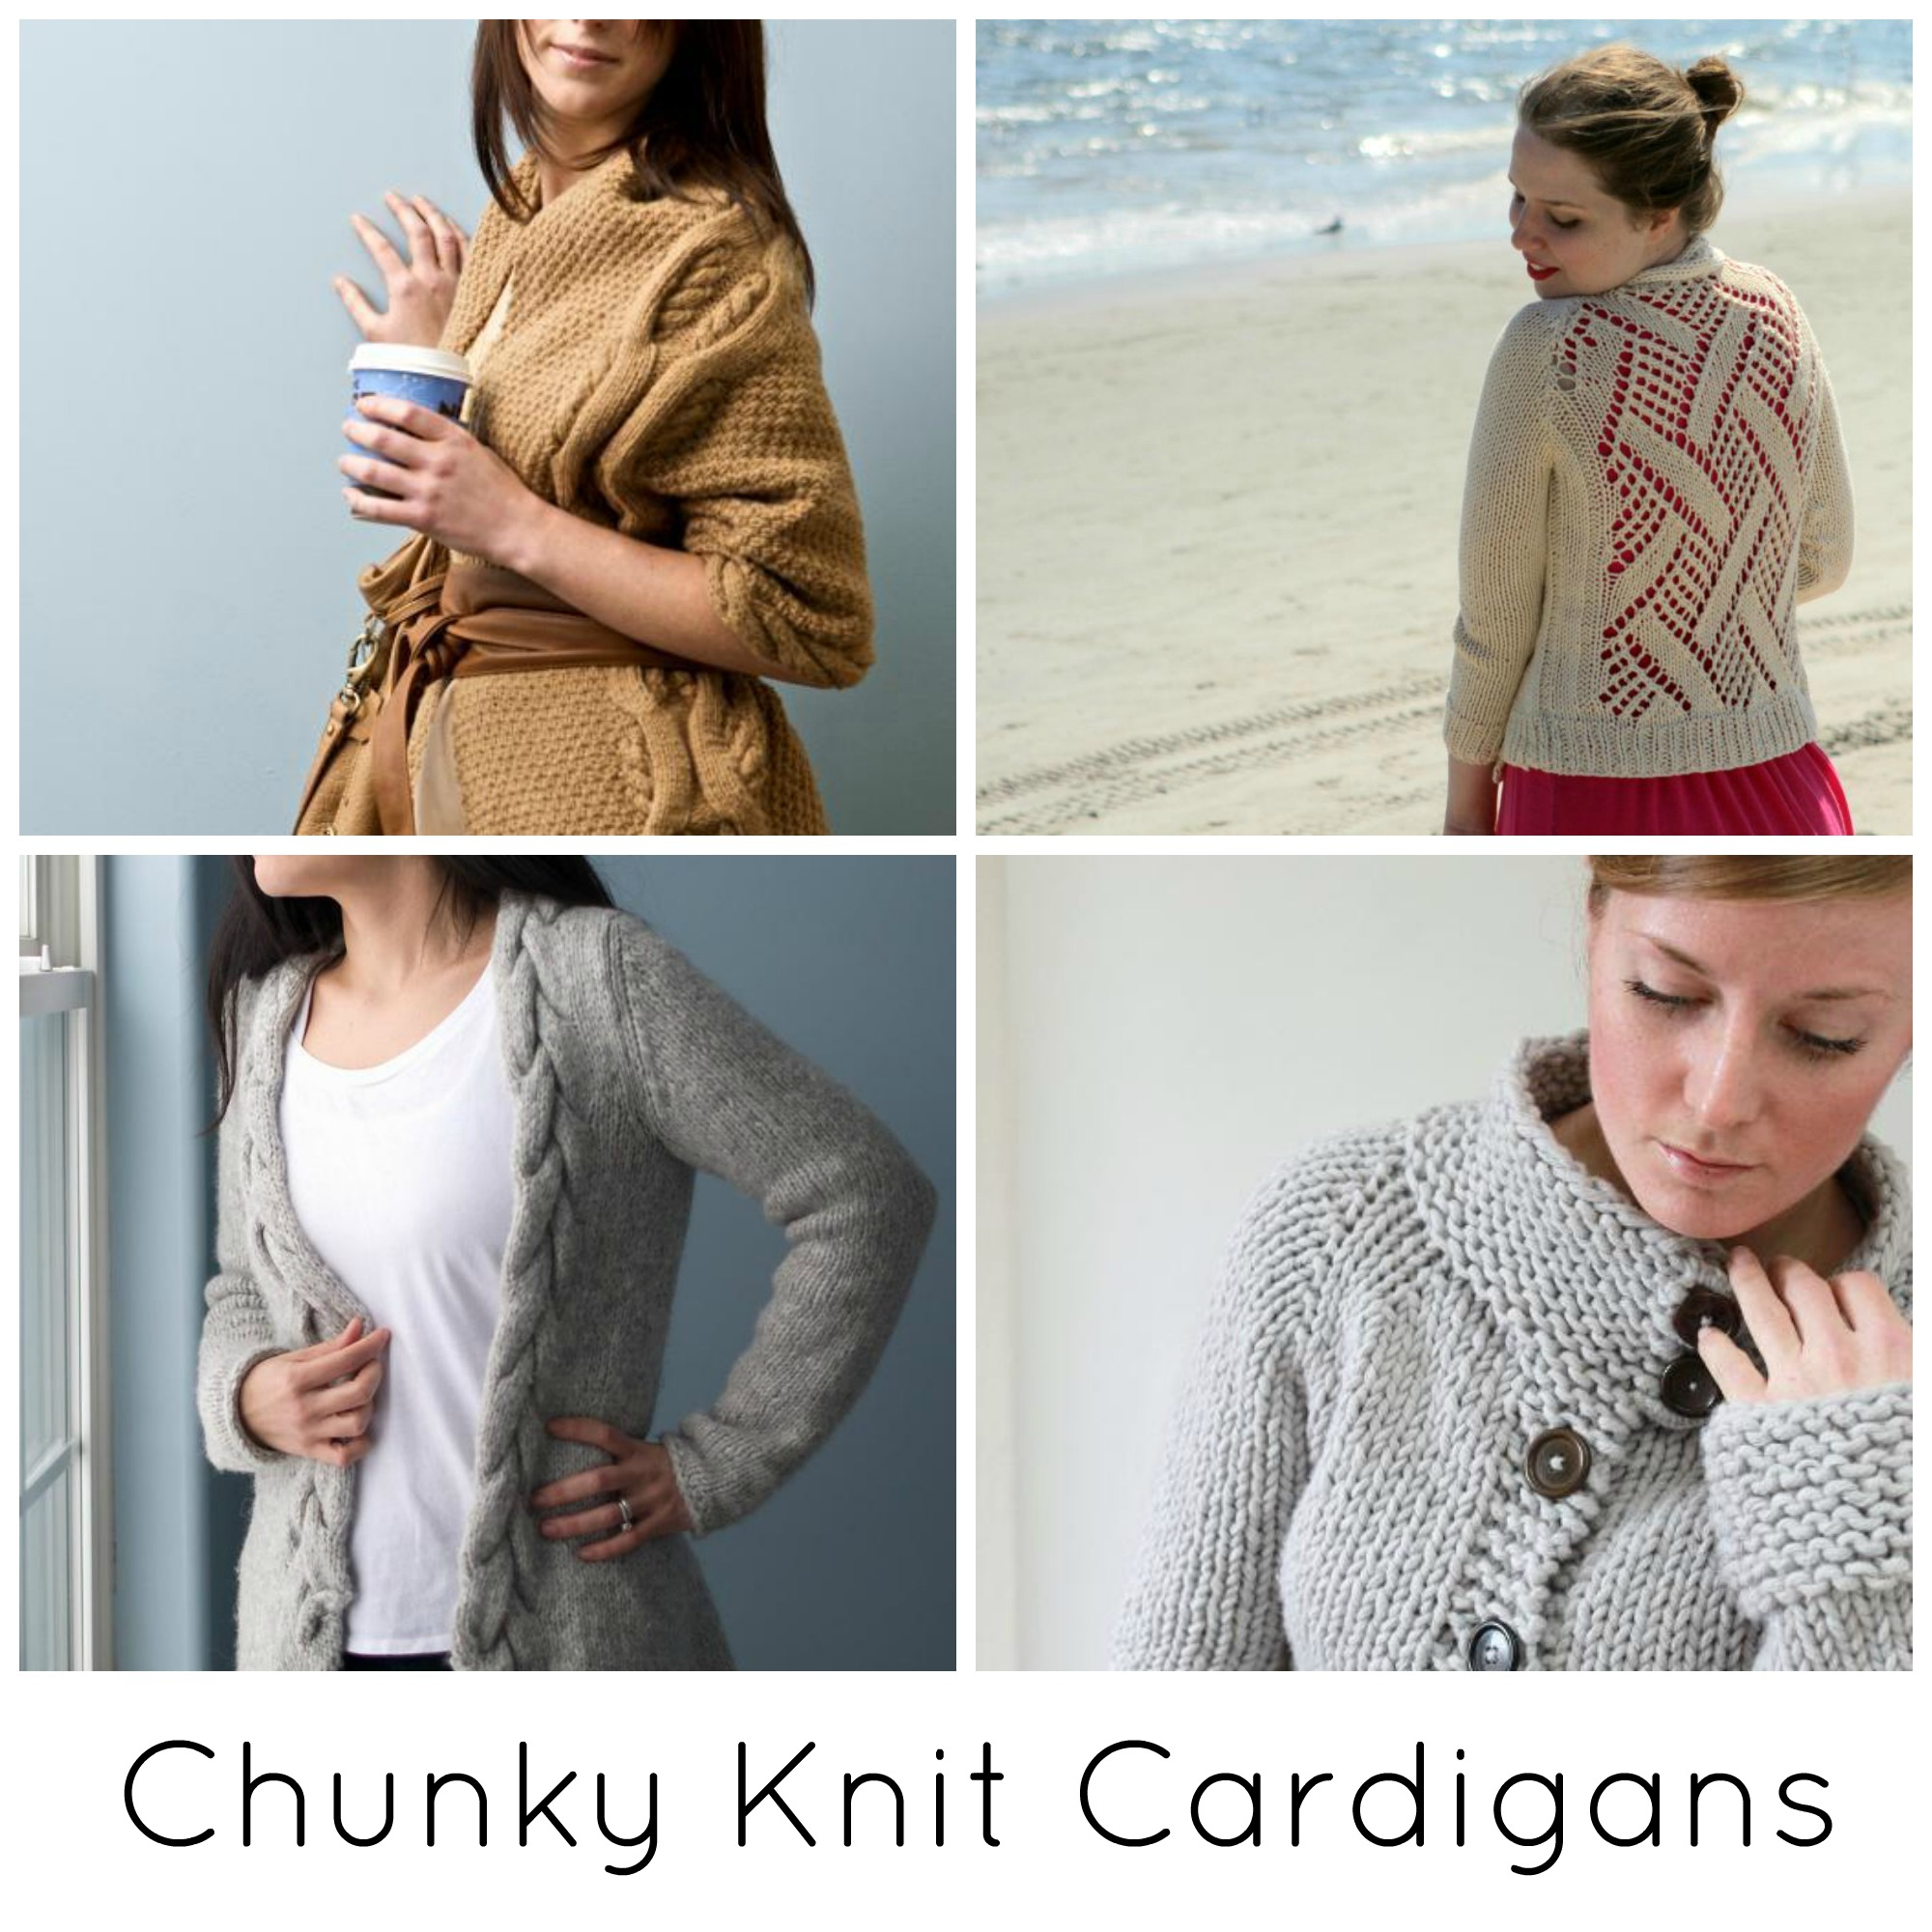 Free Knitting Patterns For Super Chunky Yarn The Coziest Chunky Knit Cardigan Patterns Ever